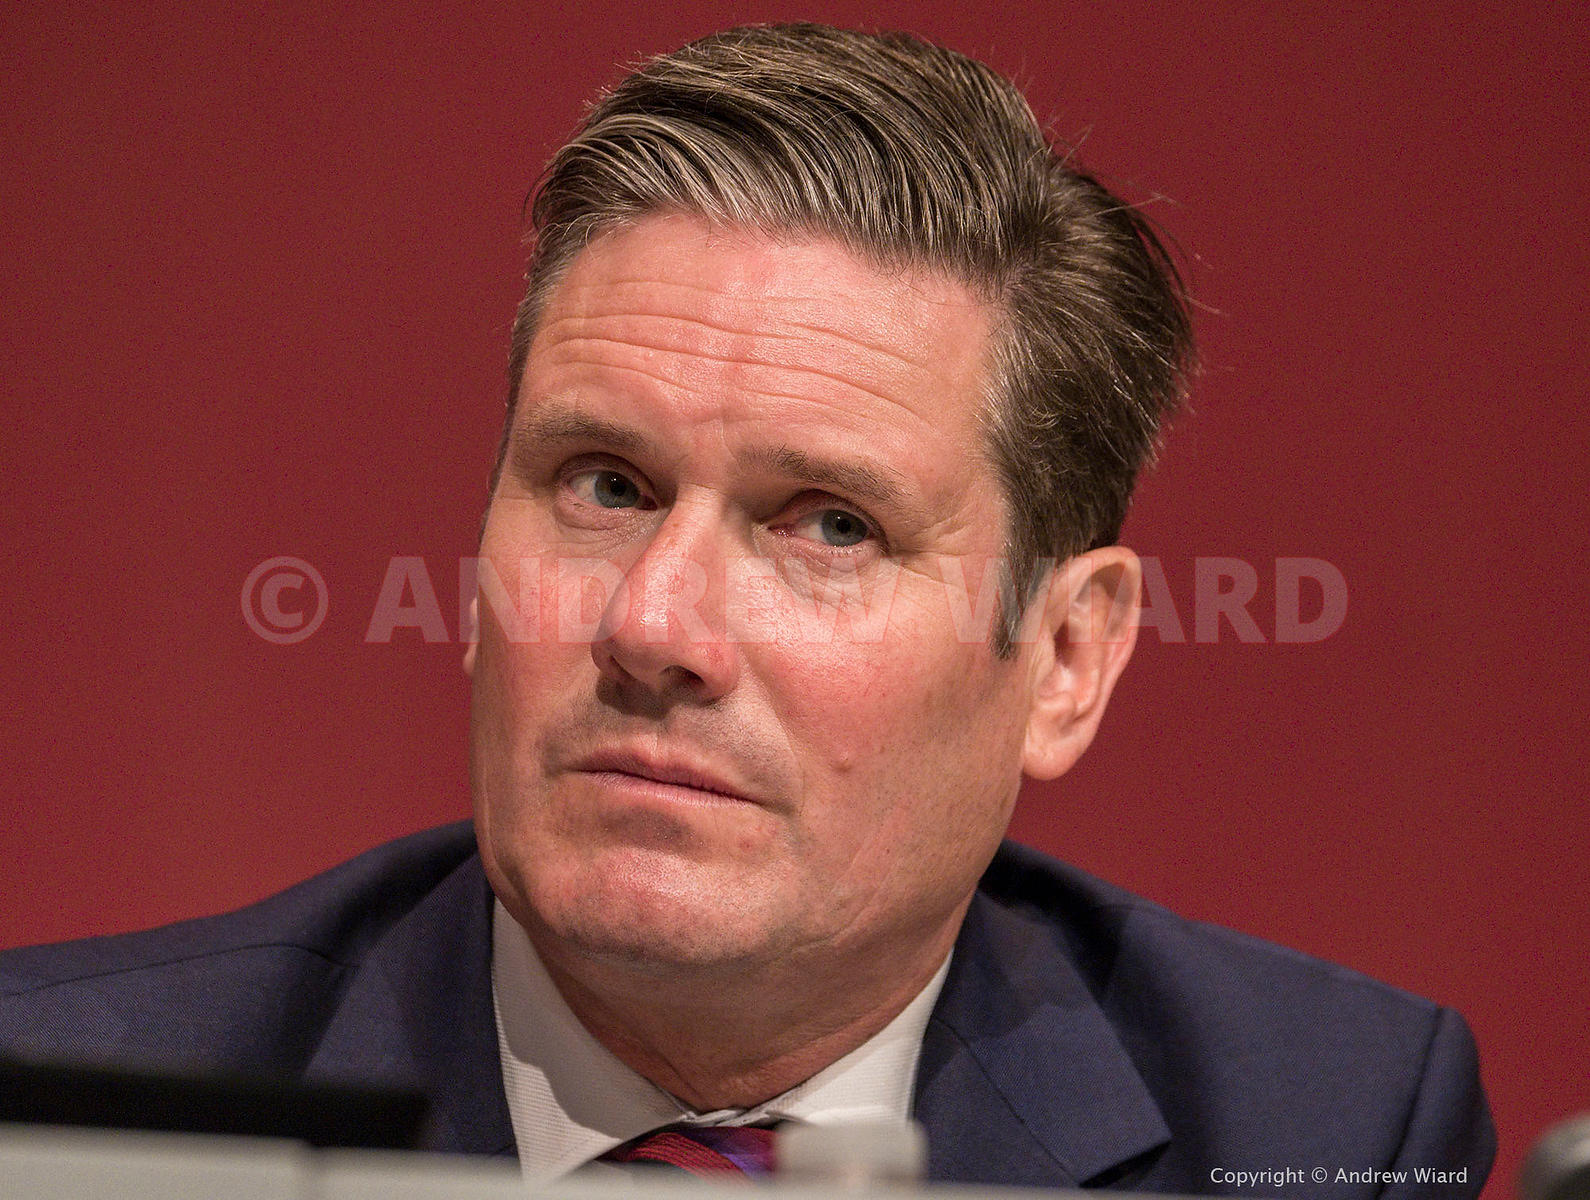 Sir Keir Starmer, elected leader of the Labour Party in April 2020.